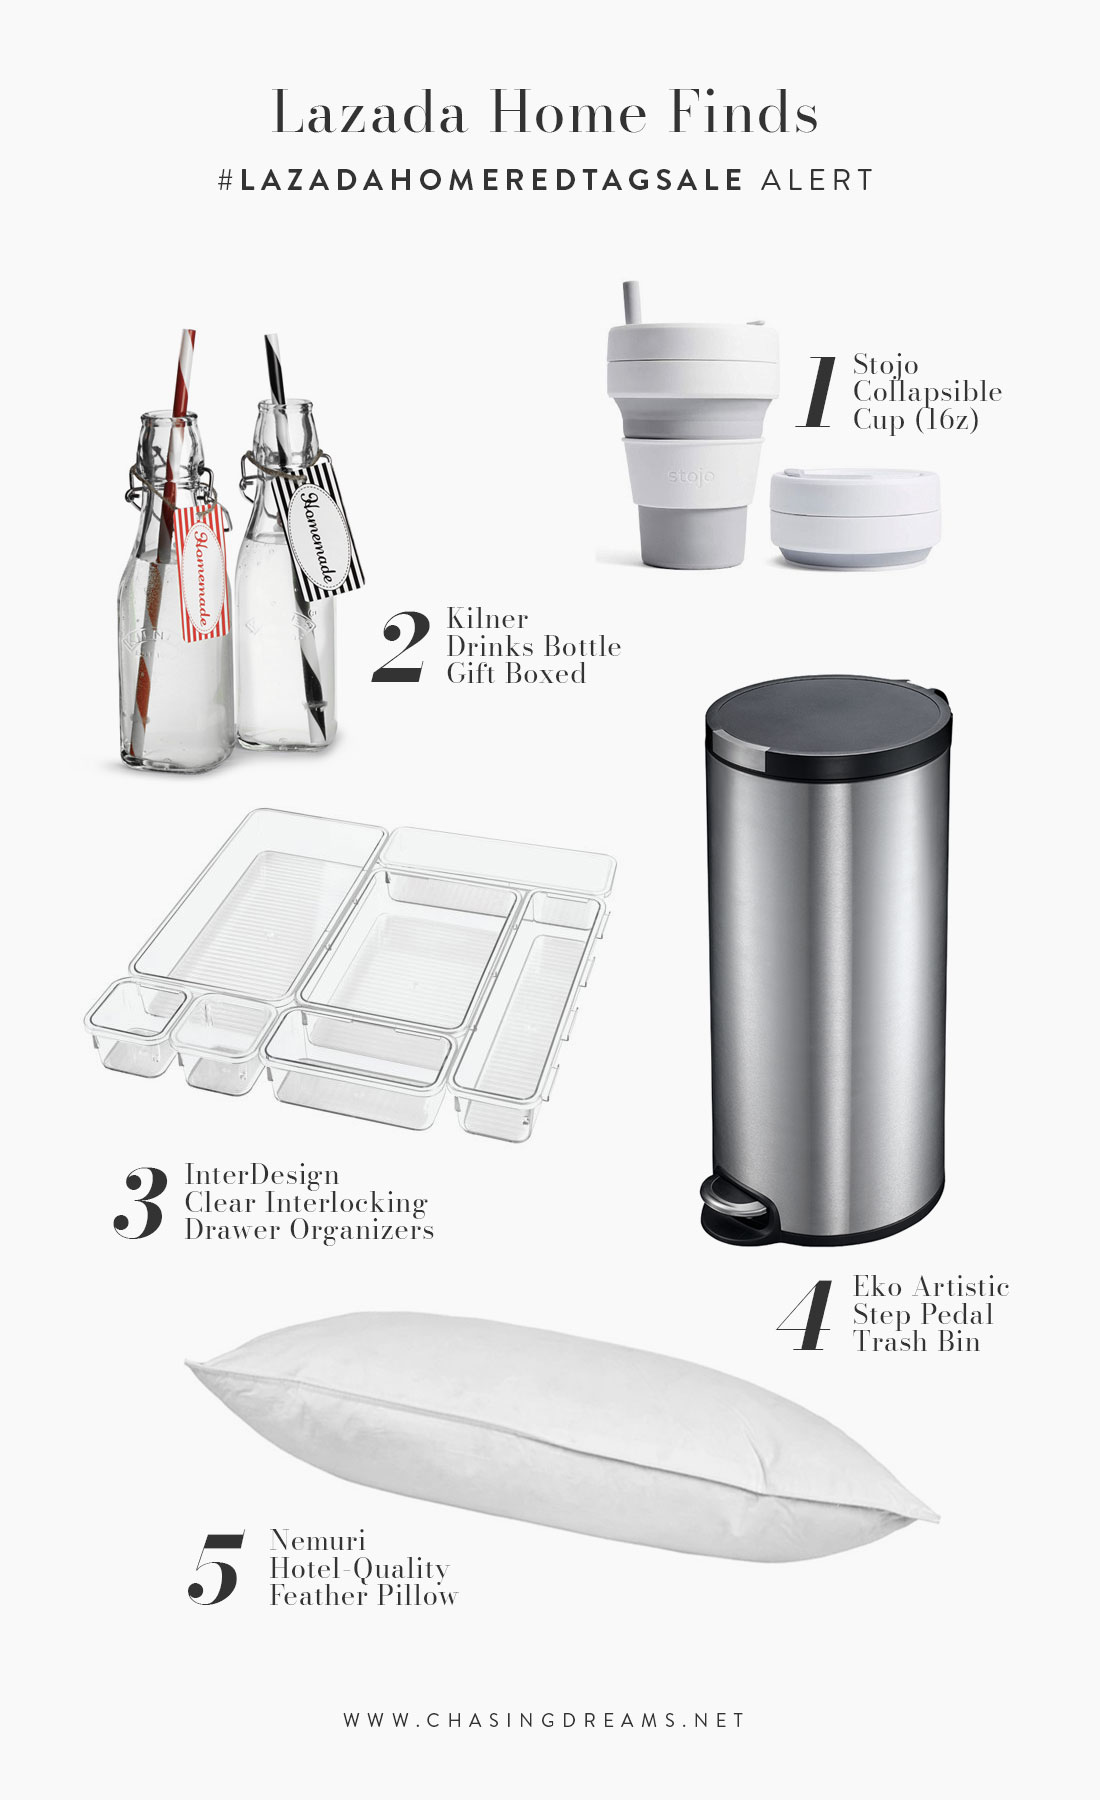 Lazada Home Red Tag Sale